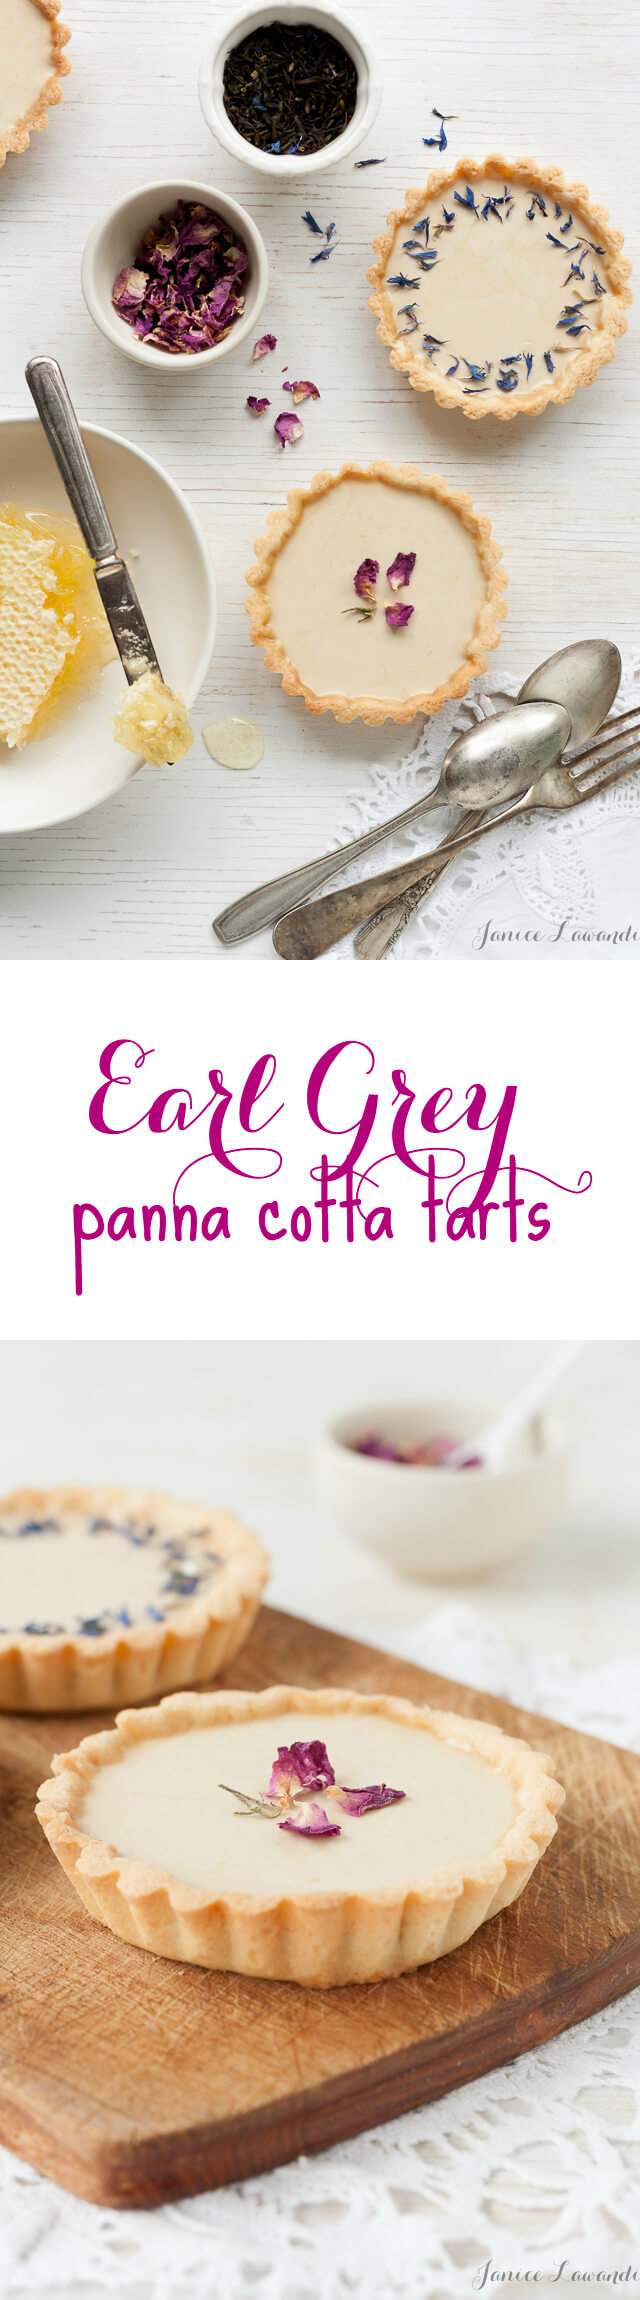 Little Earl Grey panna cotta tarts